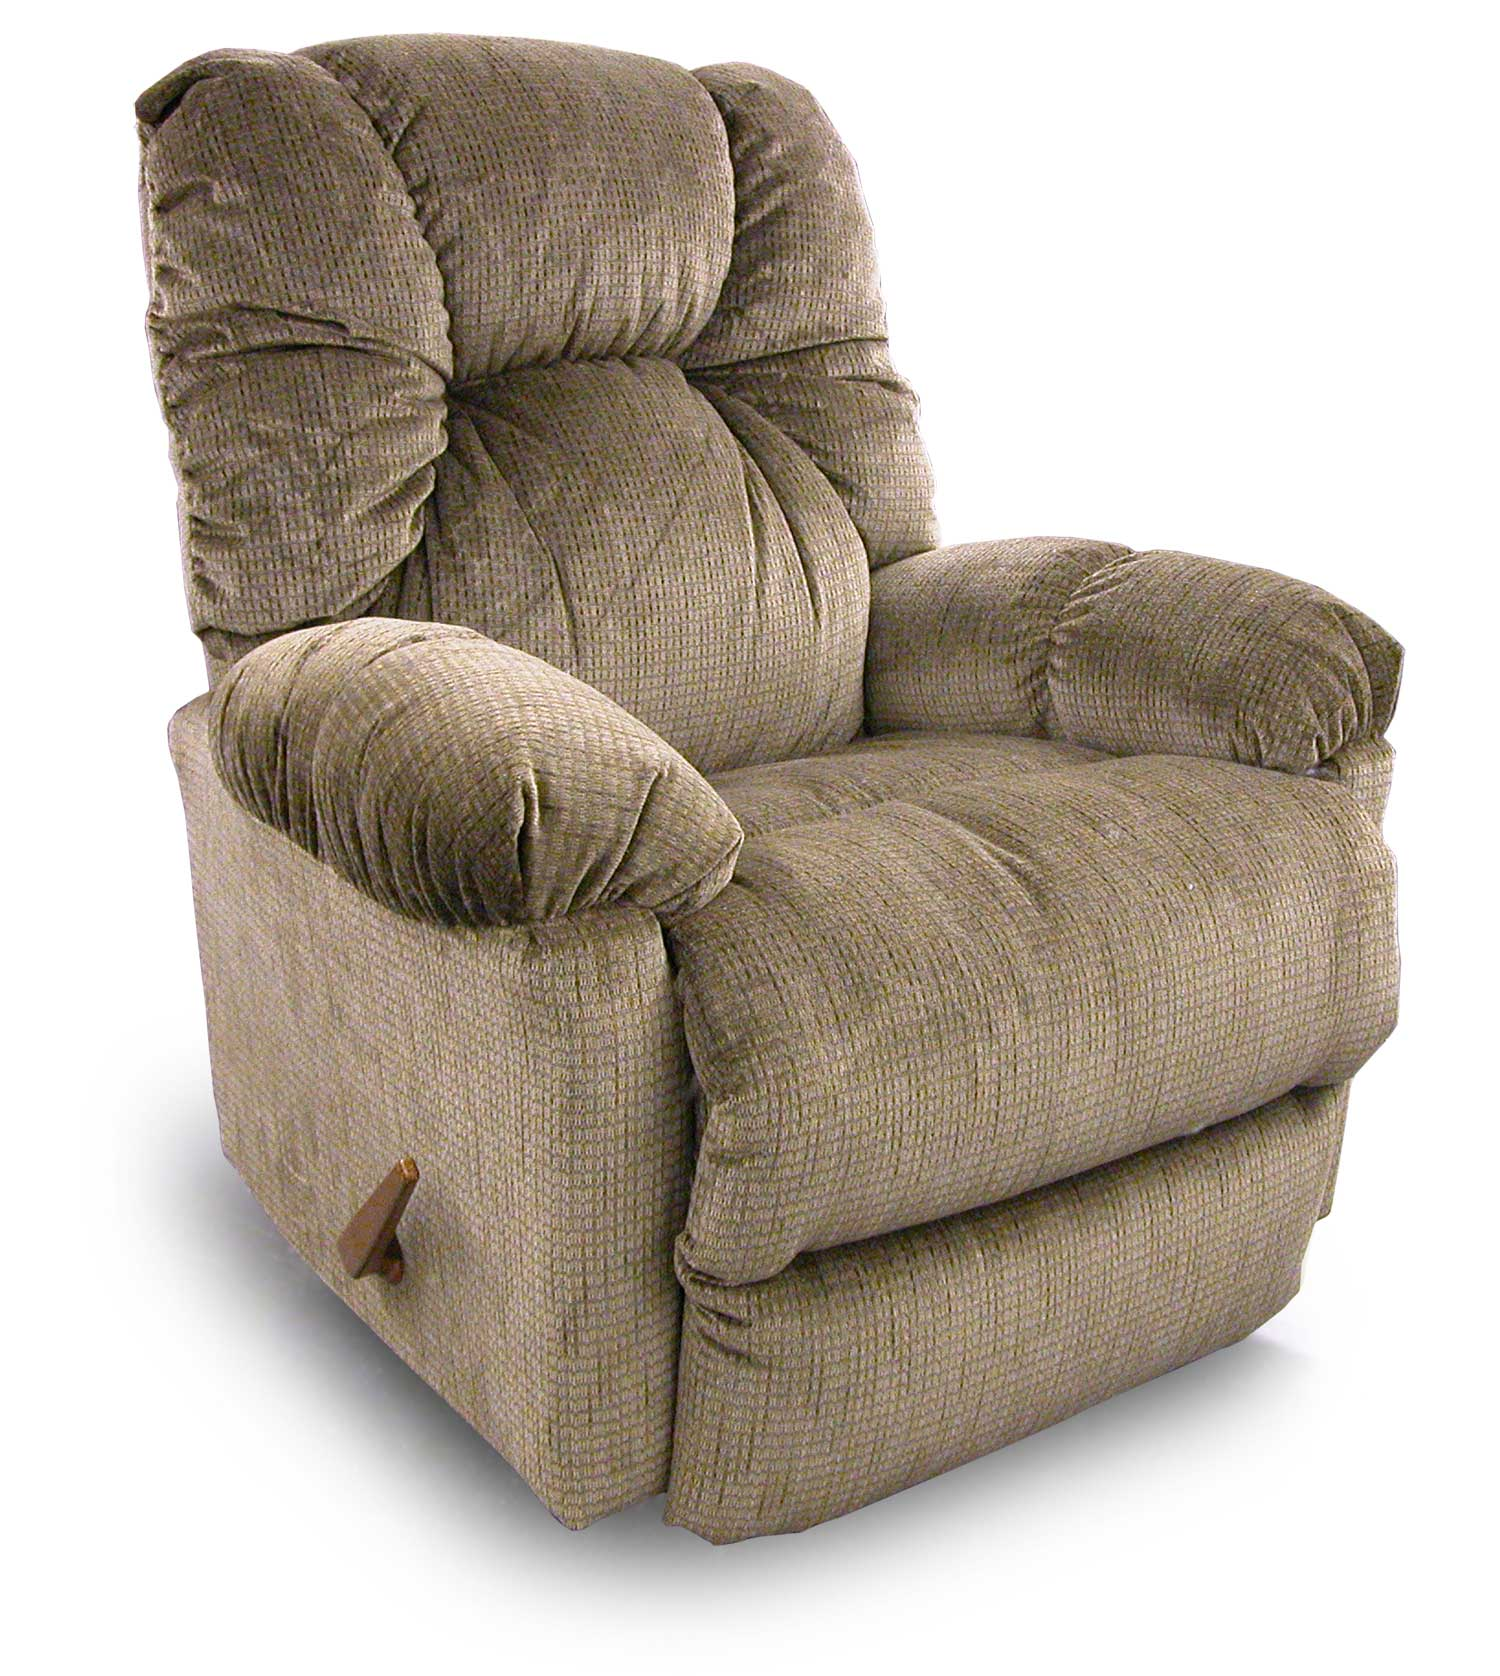 Reclining Rocking Chair Reclining Jasen 39s Fine Furniture Since 1951